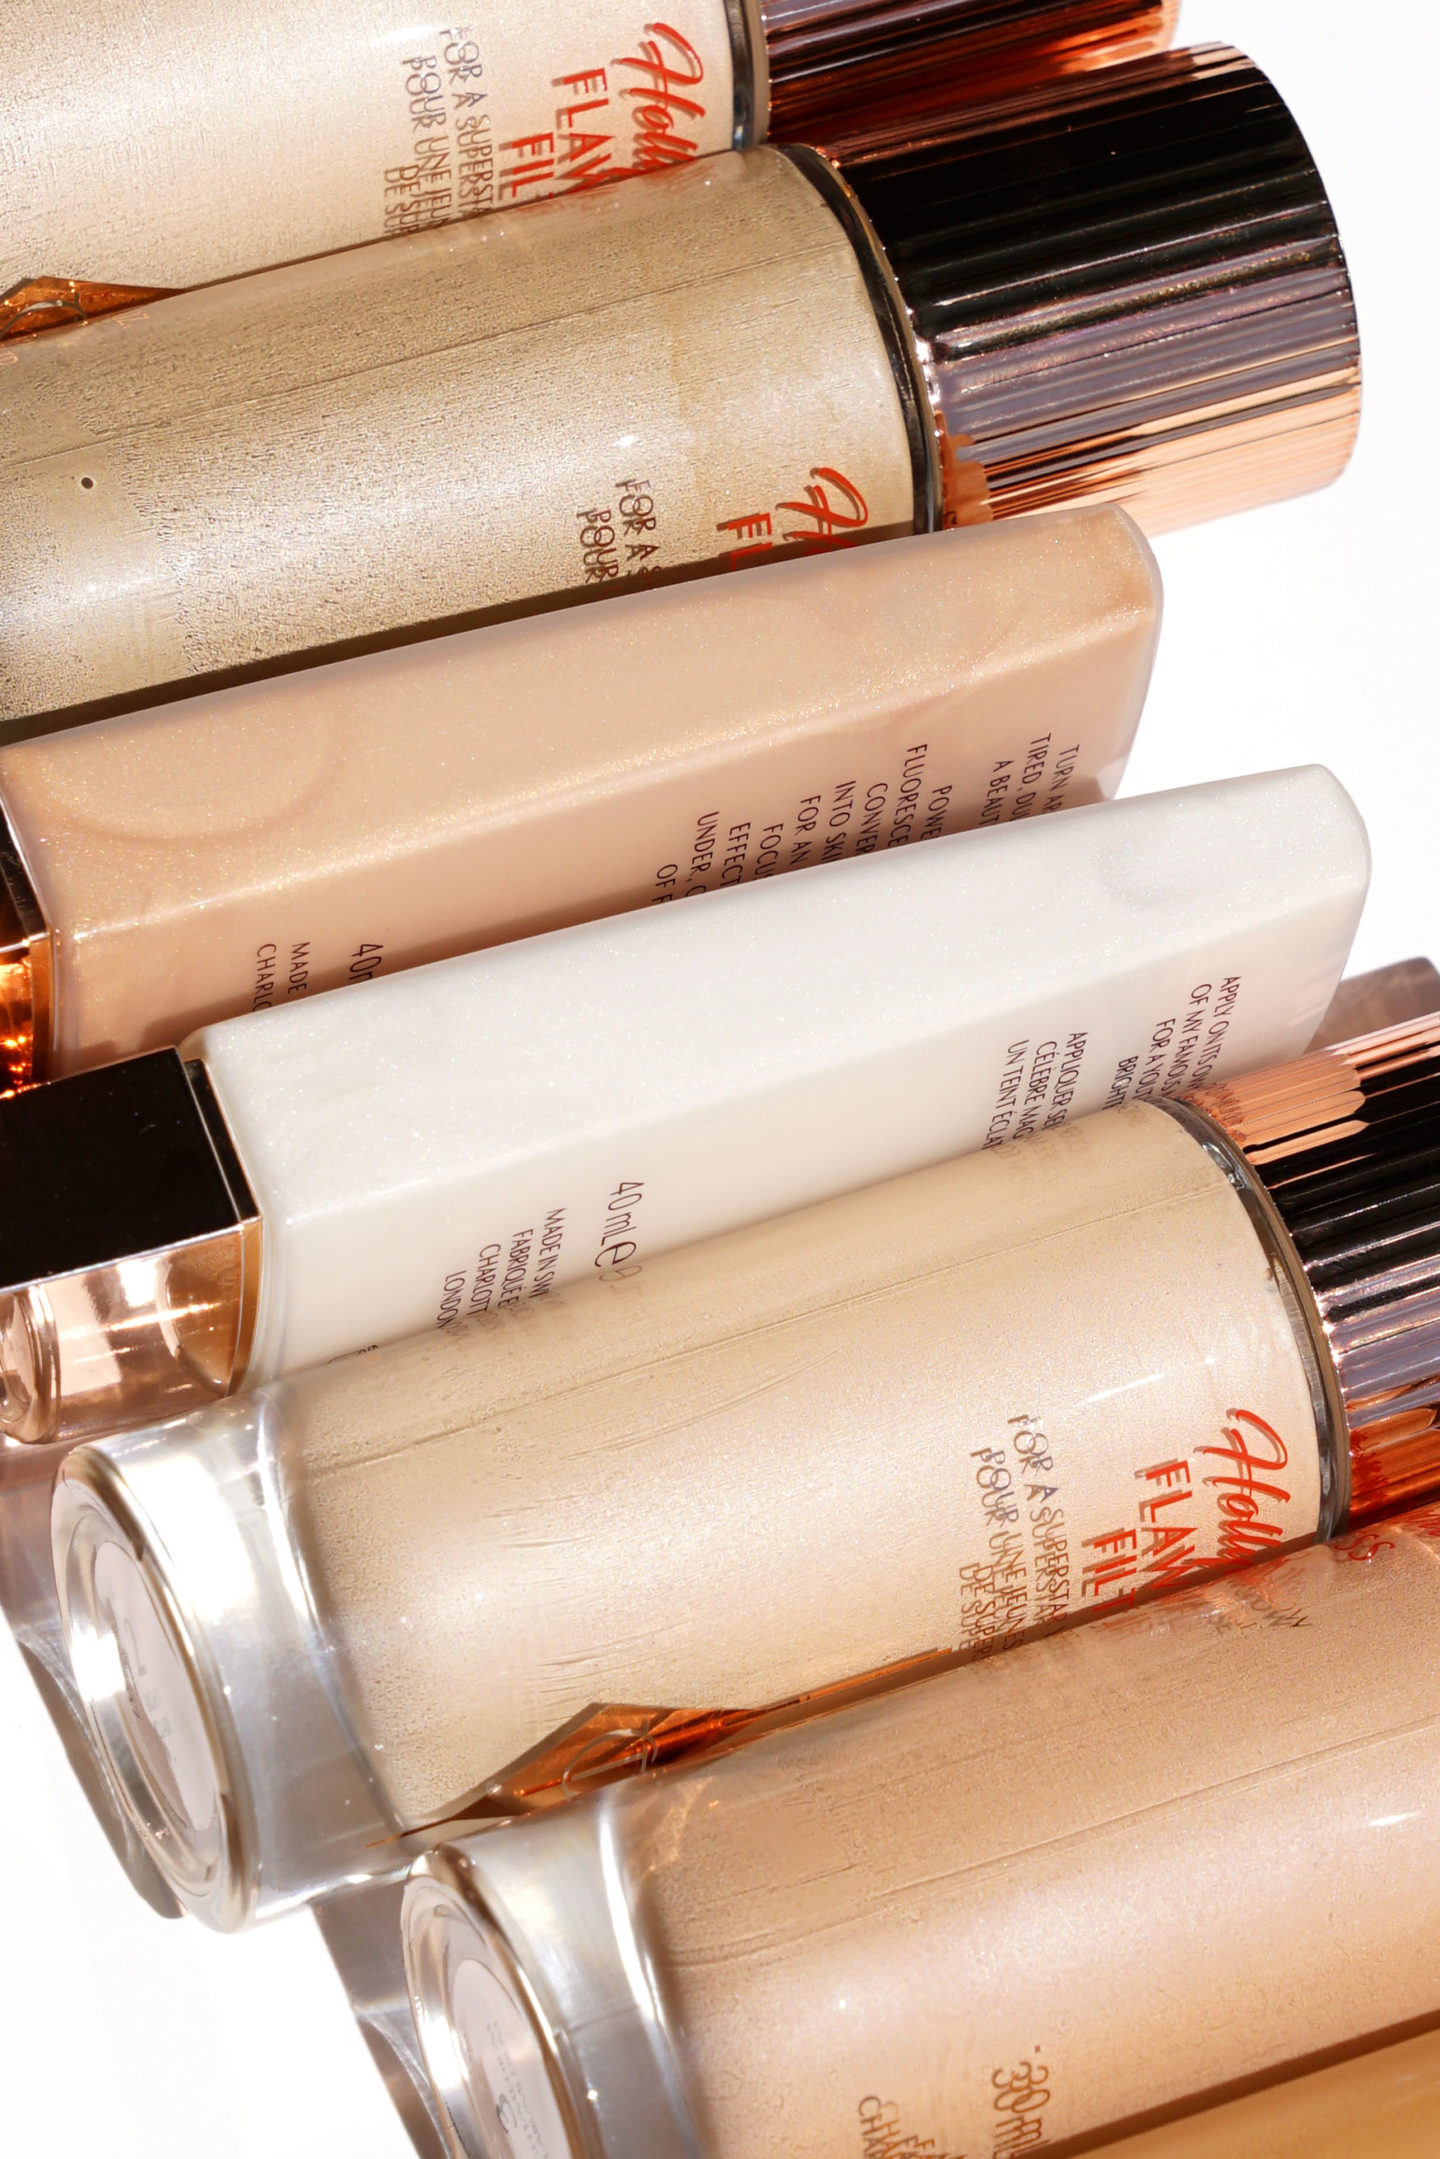 Charlotte Tilbury Hollywood Flawless Filter All Shades vs Wonder Glow and Brightening Youth Glow